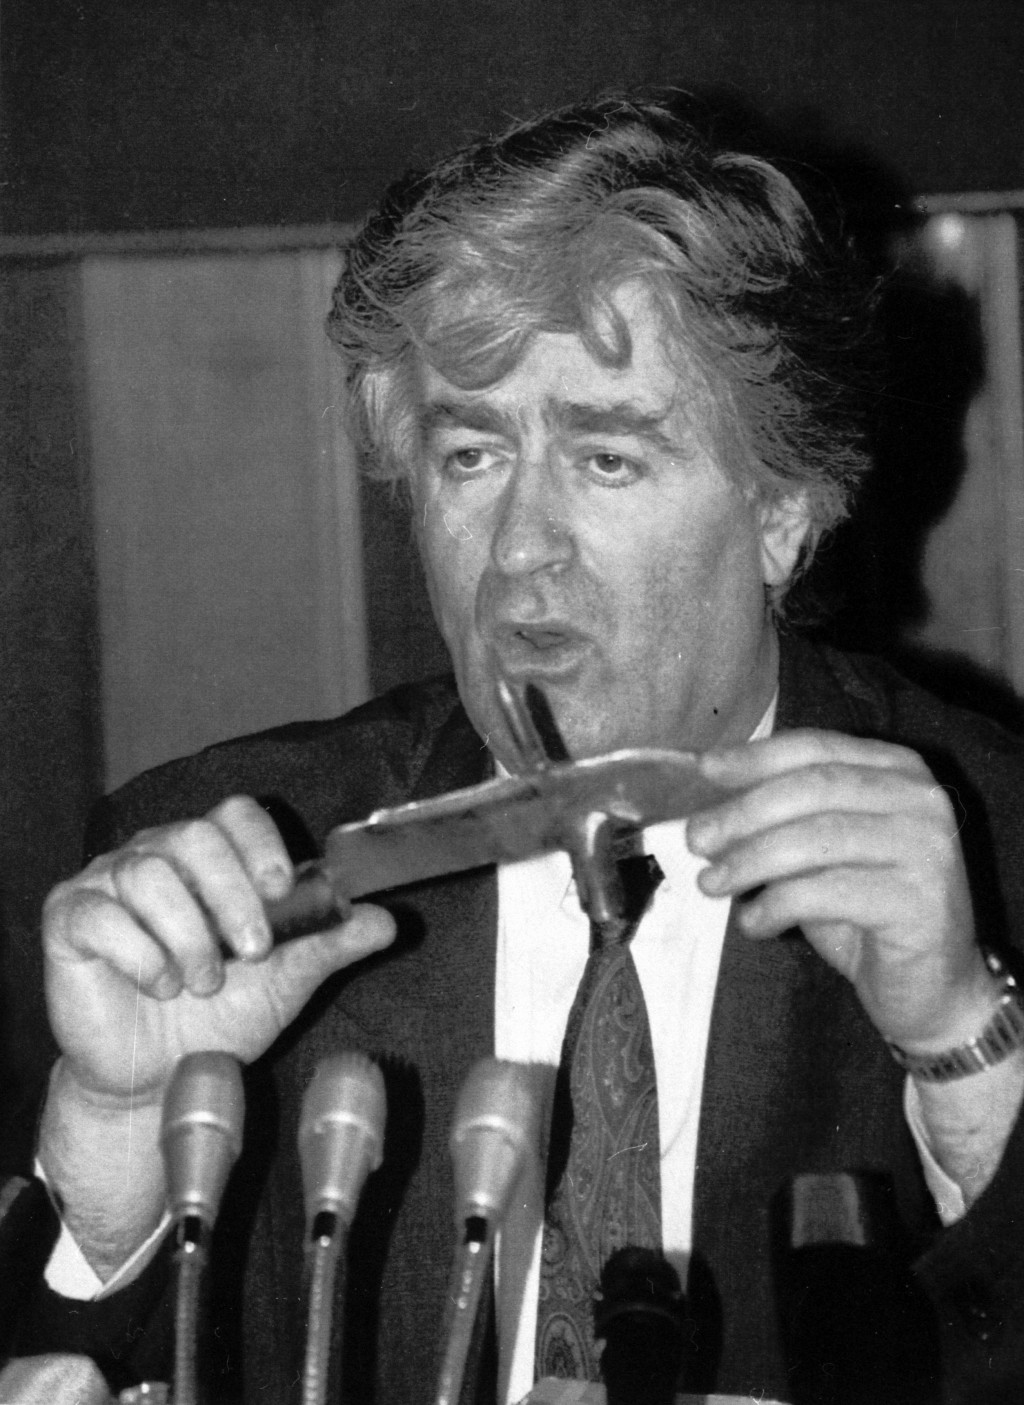 FILE - In this Sept. 23, 1992 file photo, Bosnian Serb leader Radovan Karadzic holds a knife he said was seized from Bosnian Croat soldiers in Bosnia